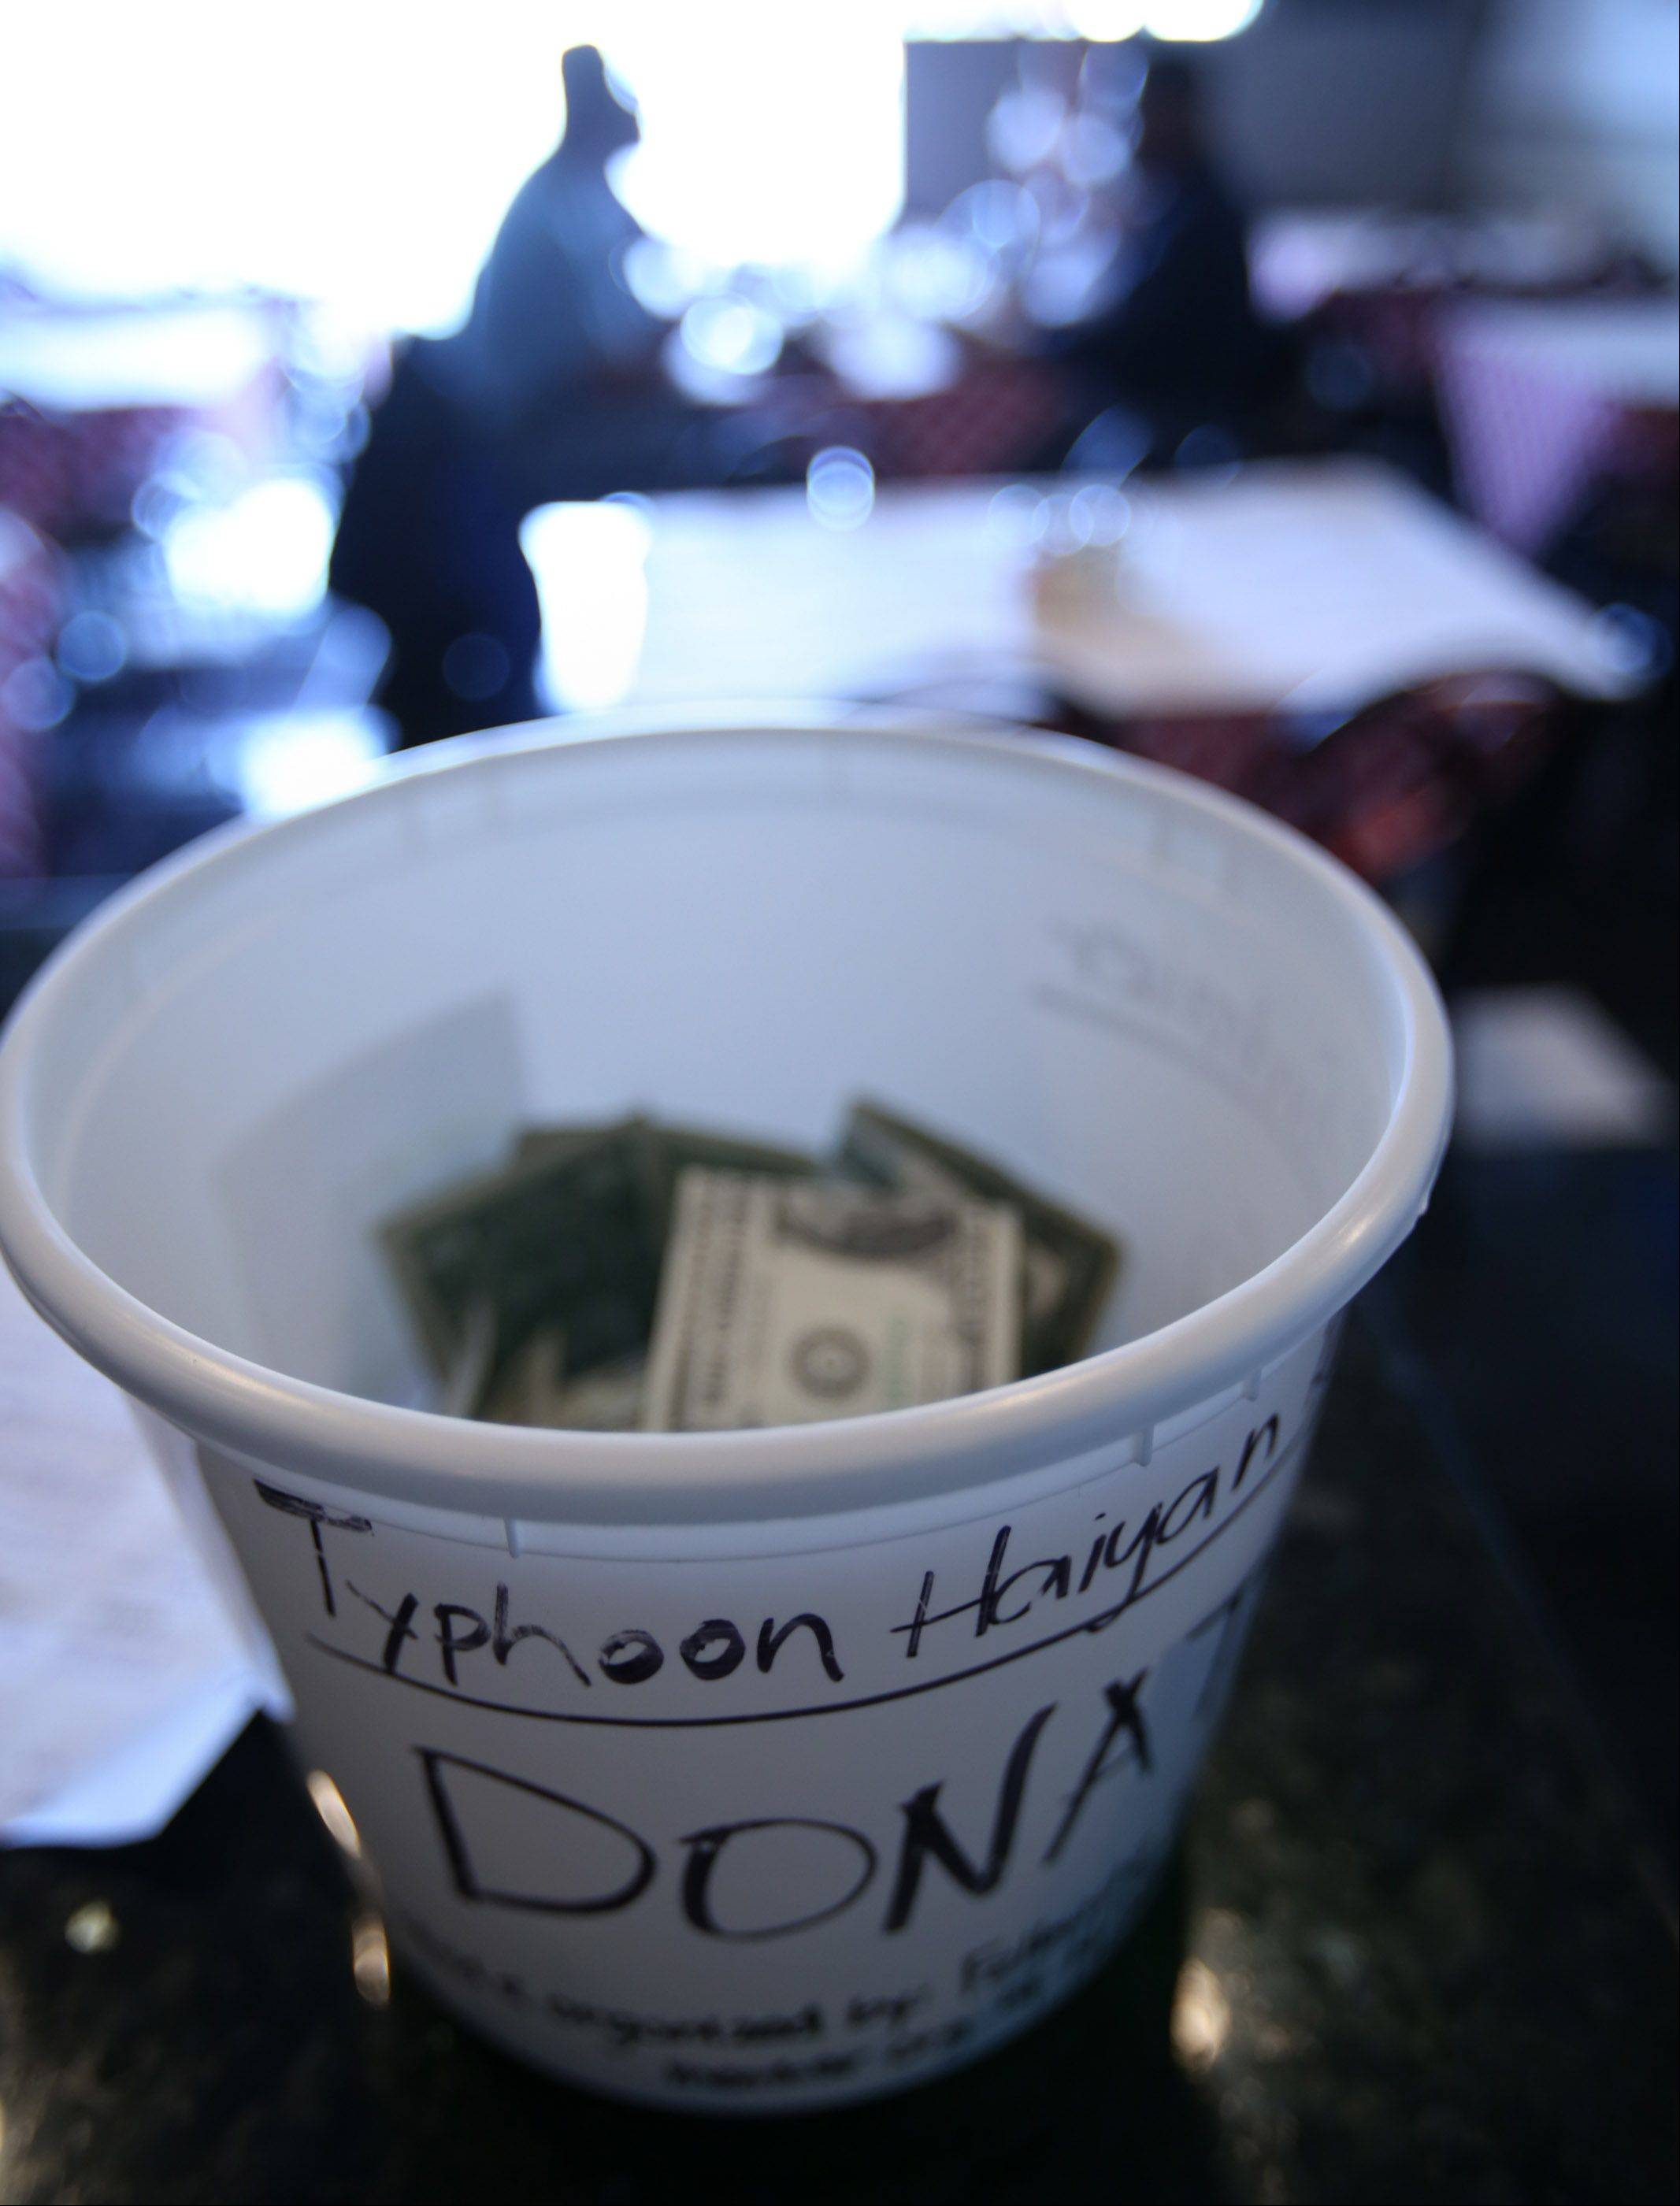 A bucket for a fund drive for typhoon victims in the Philippines sits on the front counter at Allegretti's Pizza in Des Plaines.